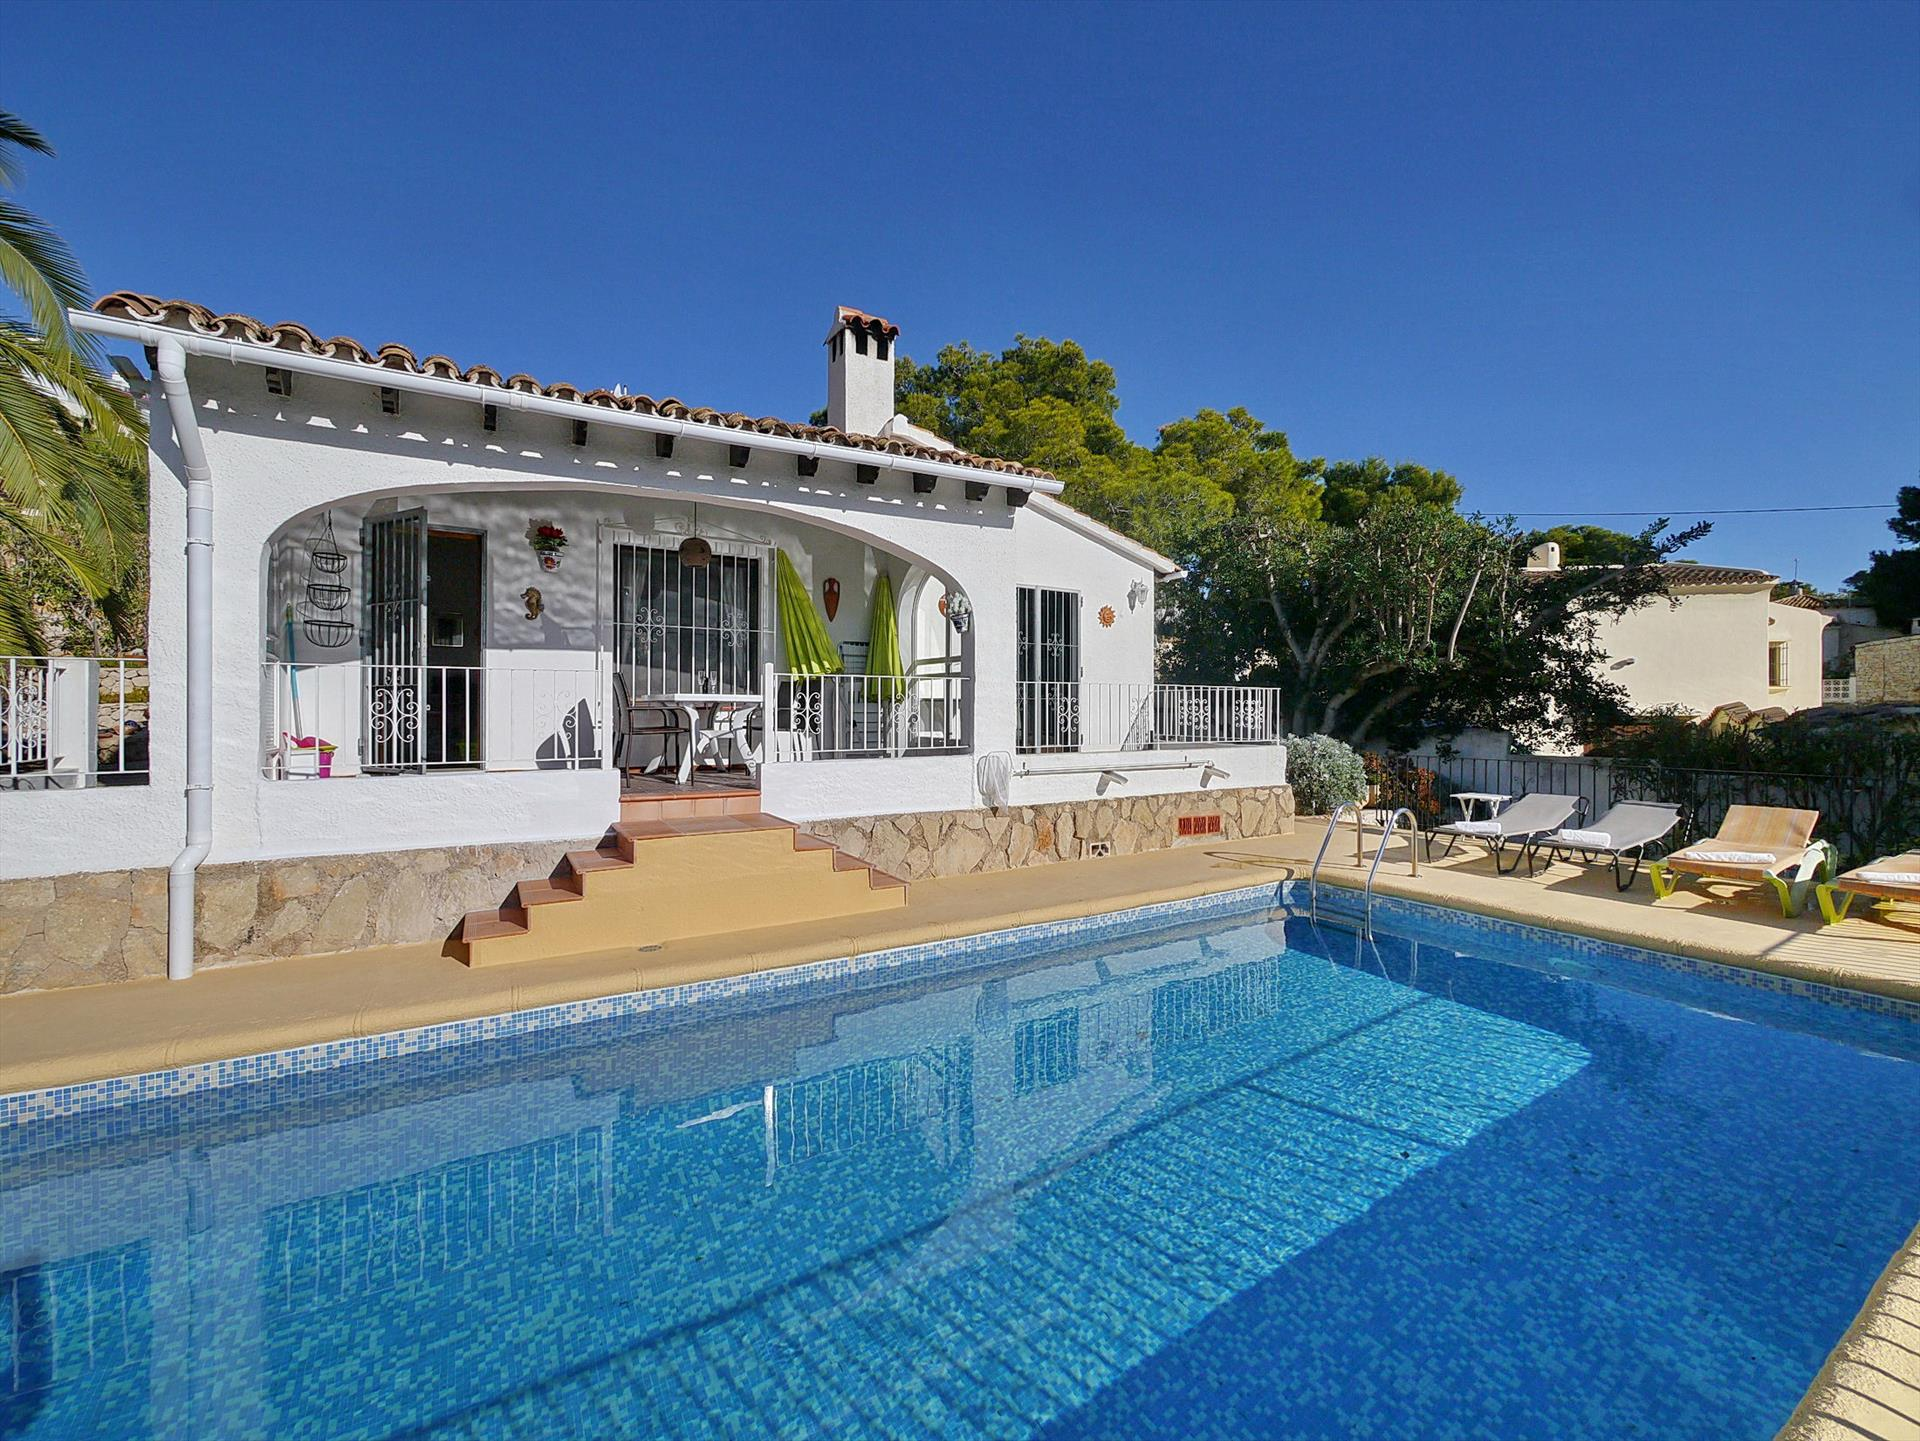 Villa Ana Marie, Classic and comfortable villa in Moraira, on the Costa Blanca, Spain  with private pool for 4 persons.....